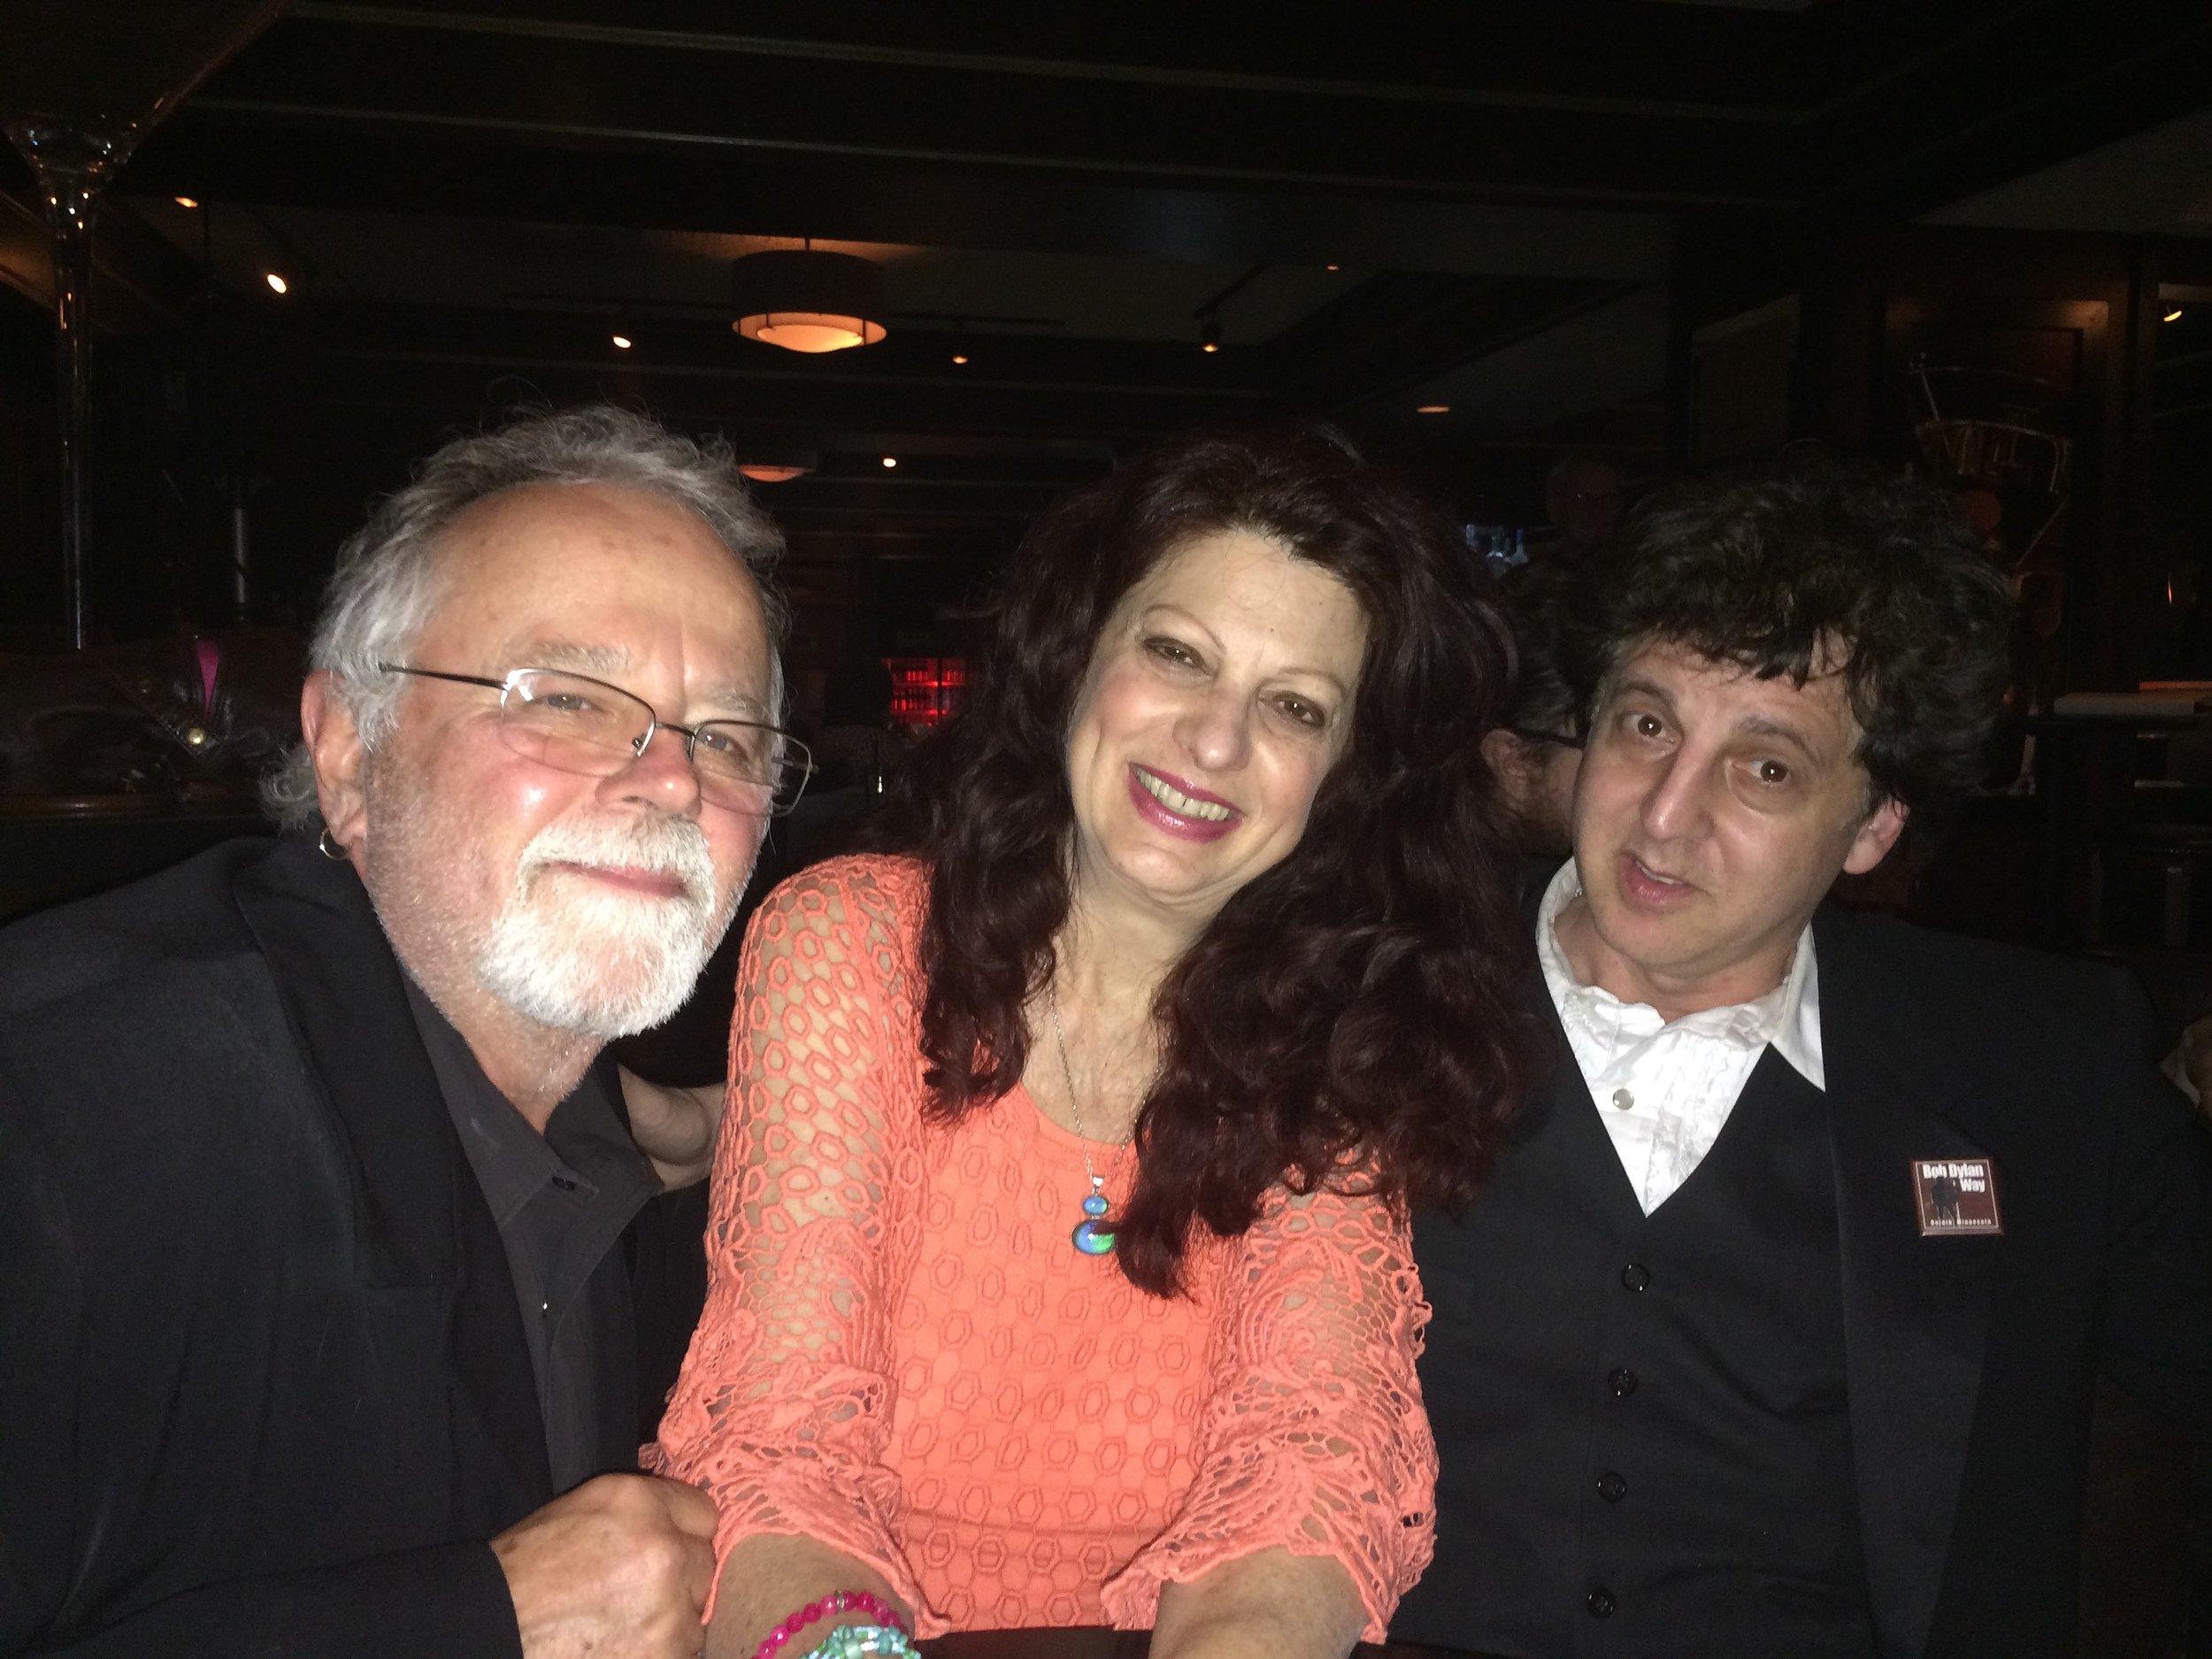 Gene LaFond, Scarlet Rivera and Magic Marc / Black Water Lounge / Duluth, Minnesota / May 24th, 2015 / Photo by Suzanne Johnson